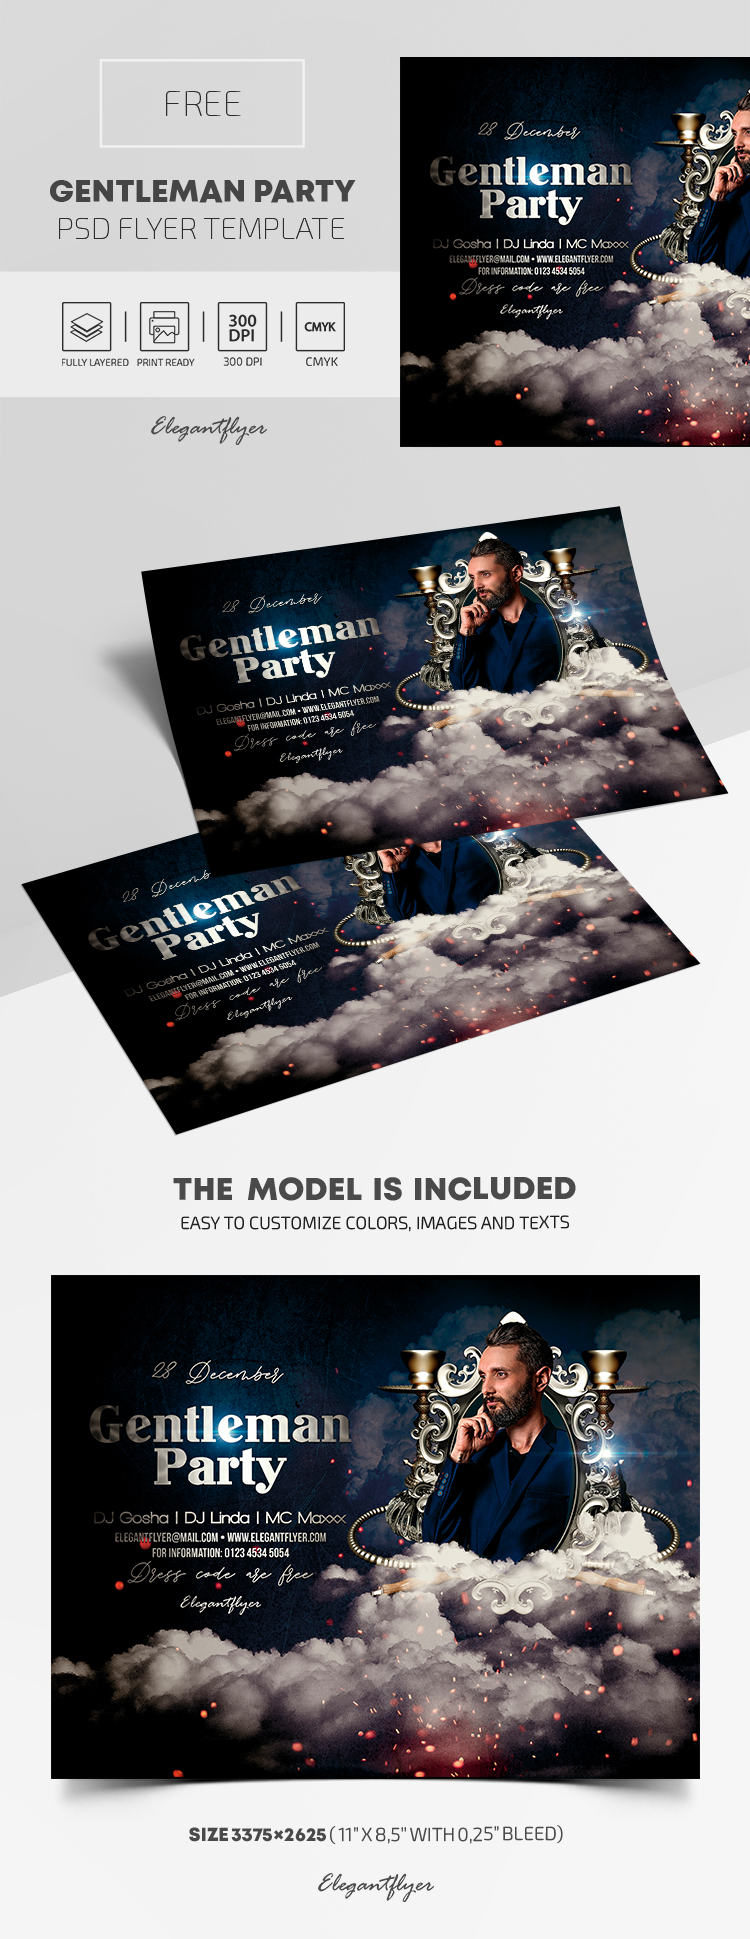 Gentleman Party – Free PSD Flyer Template